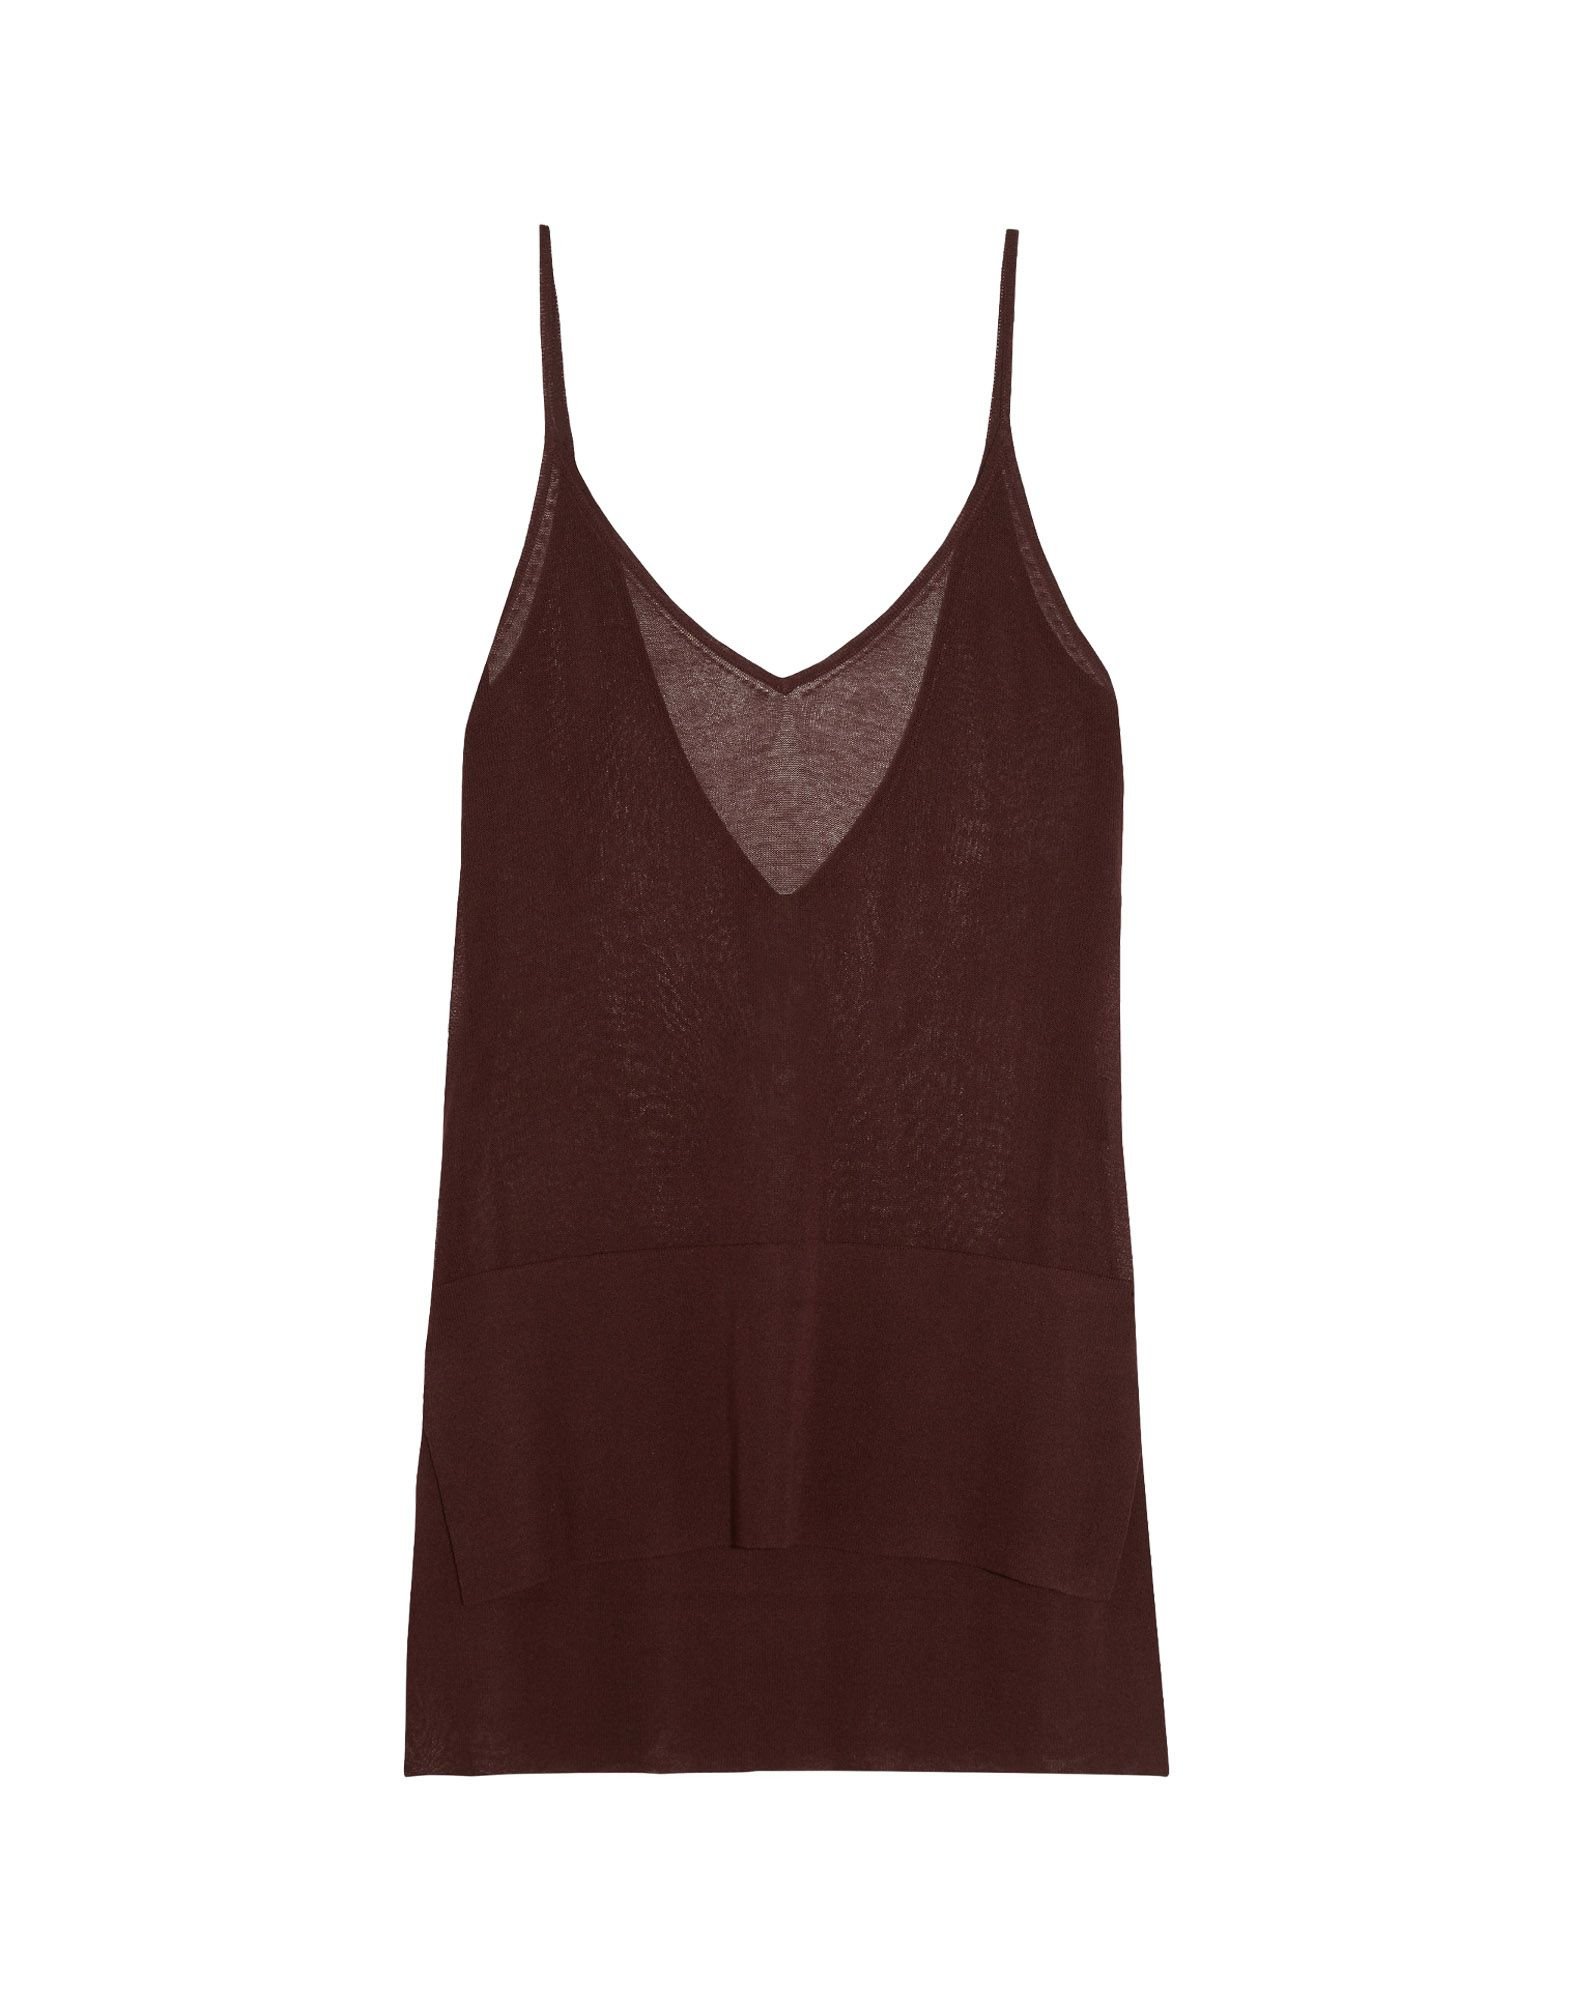 SOYER Top in Cocoa